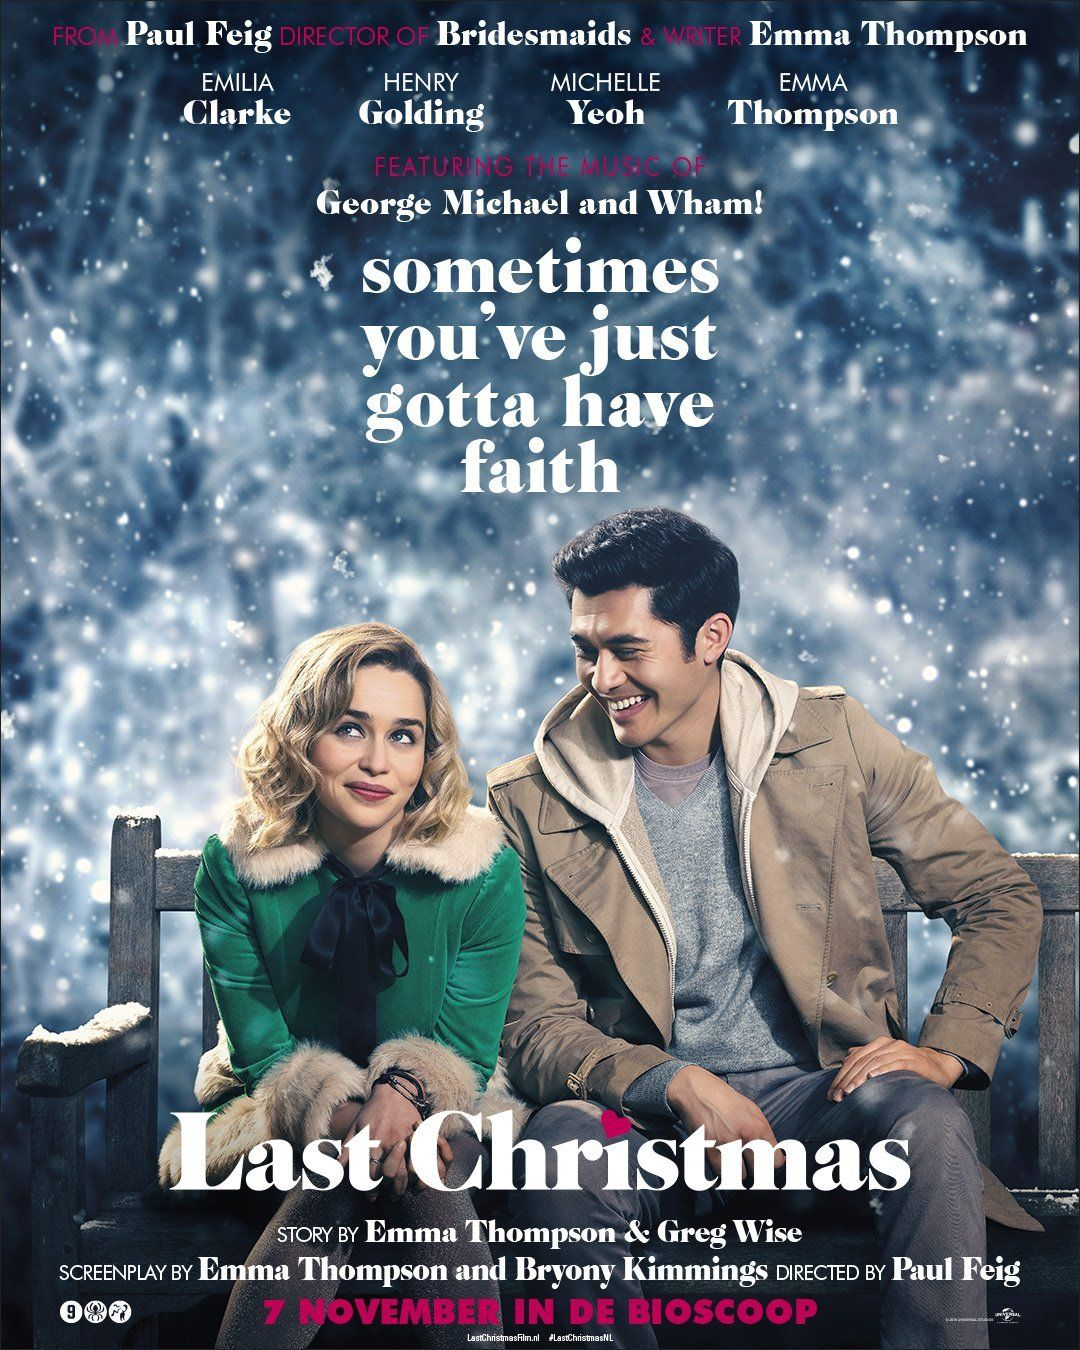 Last Christmas Movie Source Some Last Christmas Posters And Release Dates Last Christmas Movie Streaming Movies Free Movies Online